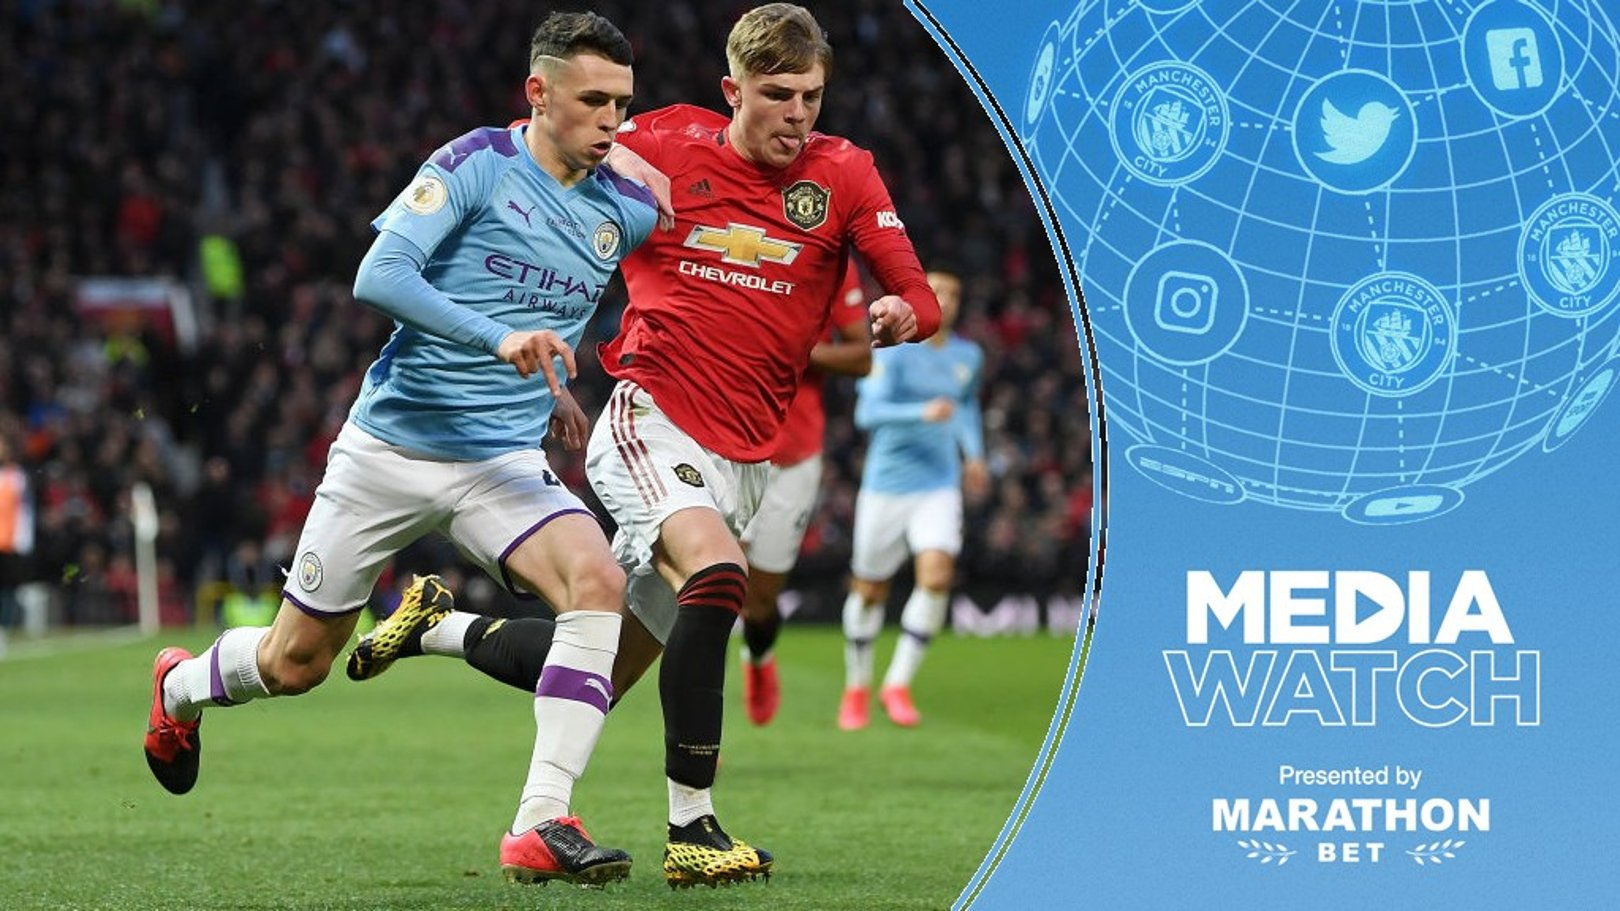 Media Watch: Foden urges City to stay motivated